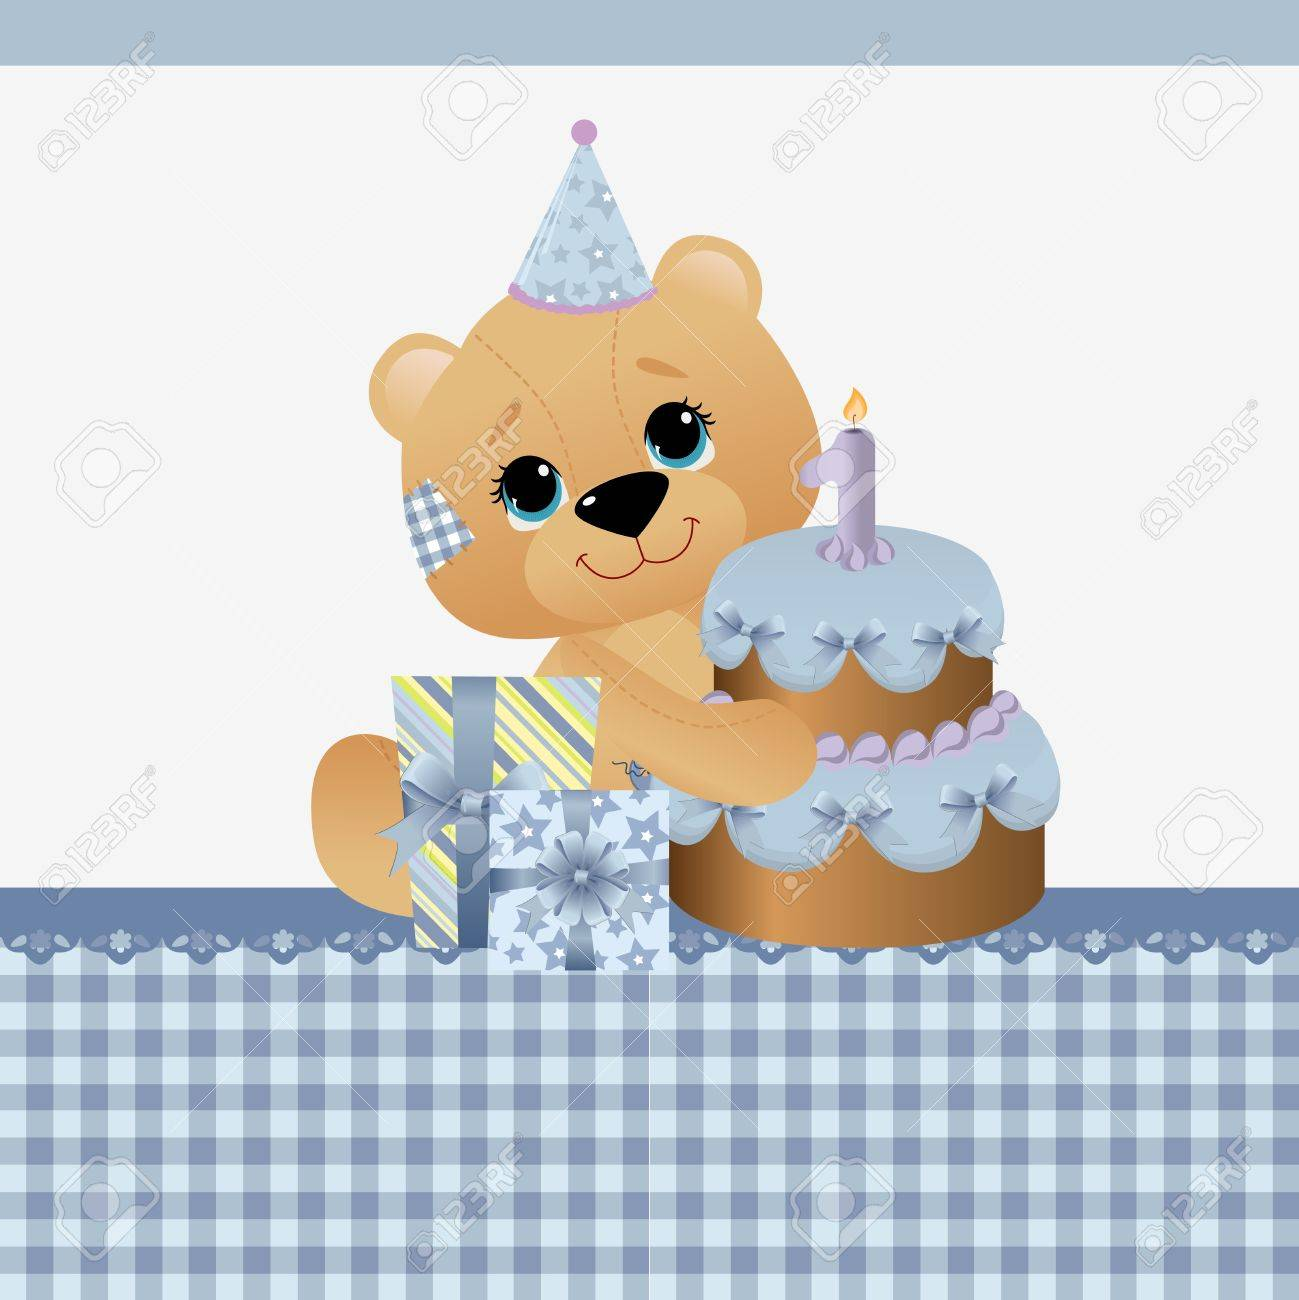 Cute Template For Baby Birthday Greetings Card Royalty Free – Cute Birthday Greeting Cards